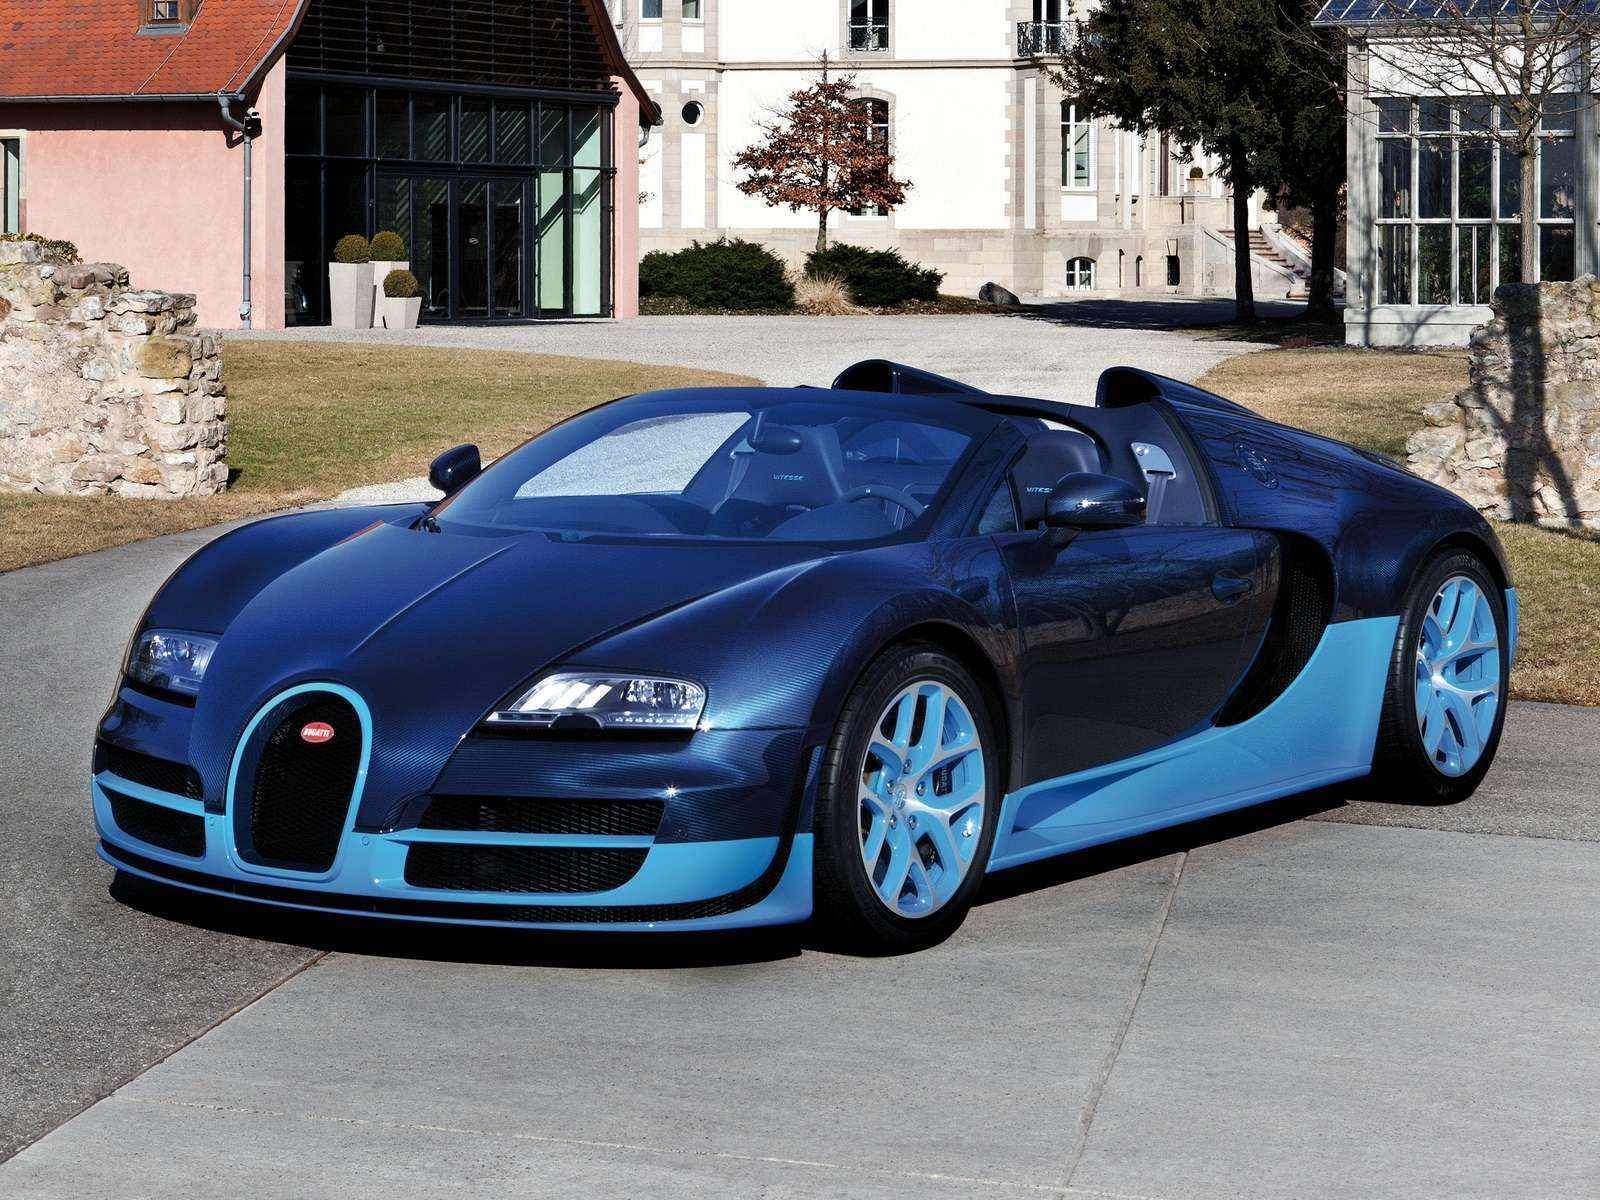 Bugatti Cars Wallpapers Hd: Bugatti Car (14) Hd Wallpapers : Hd Car Wallpapers